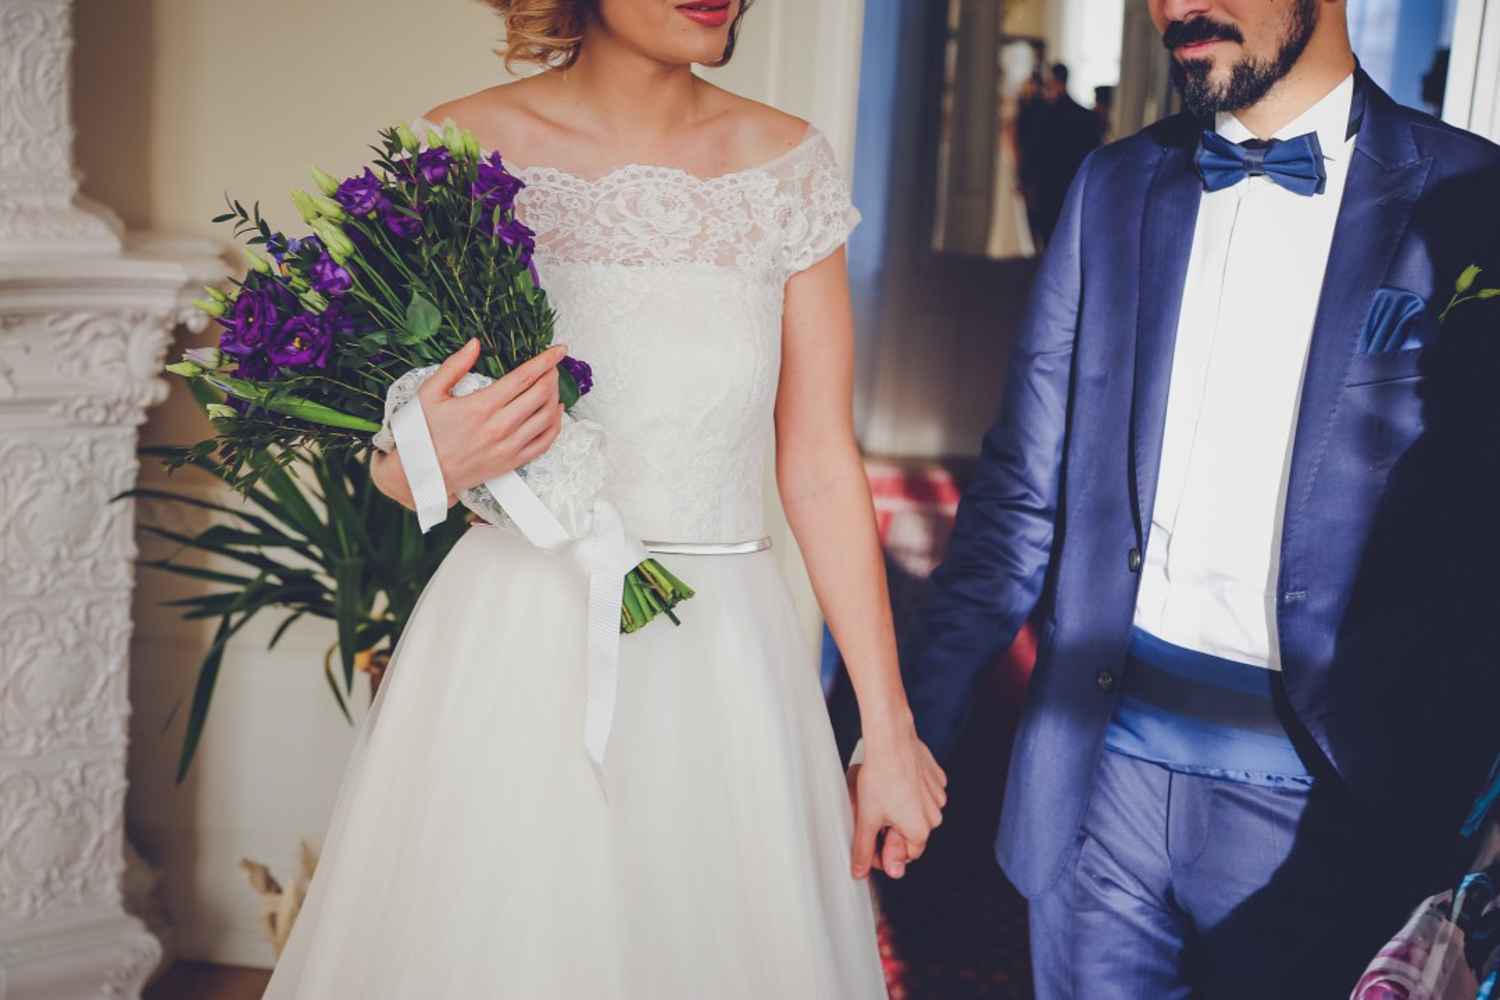 Planning a Wedding: The Ultimate Guide